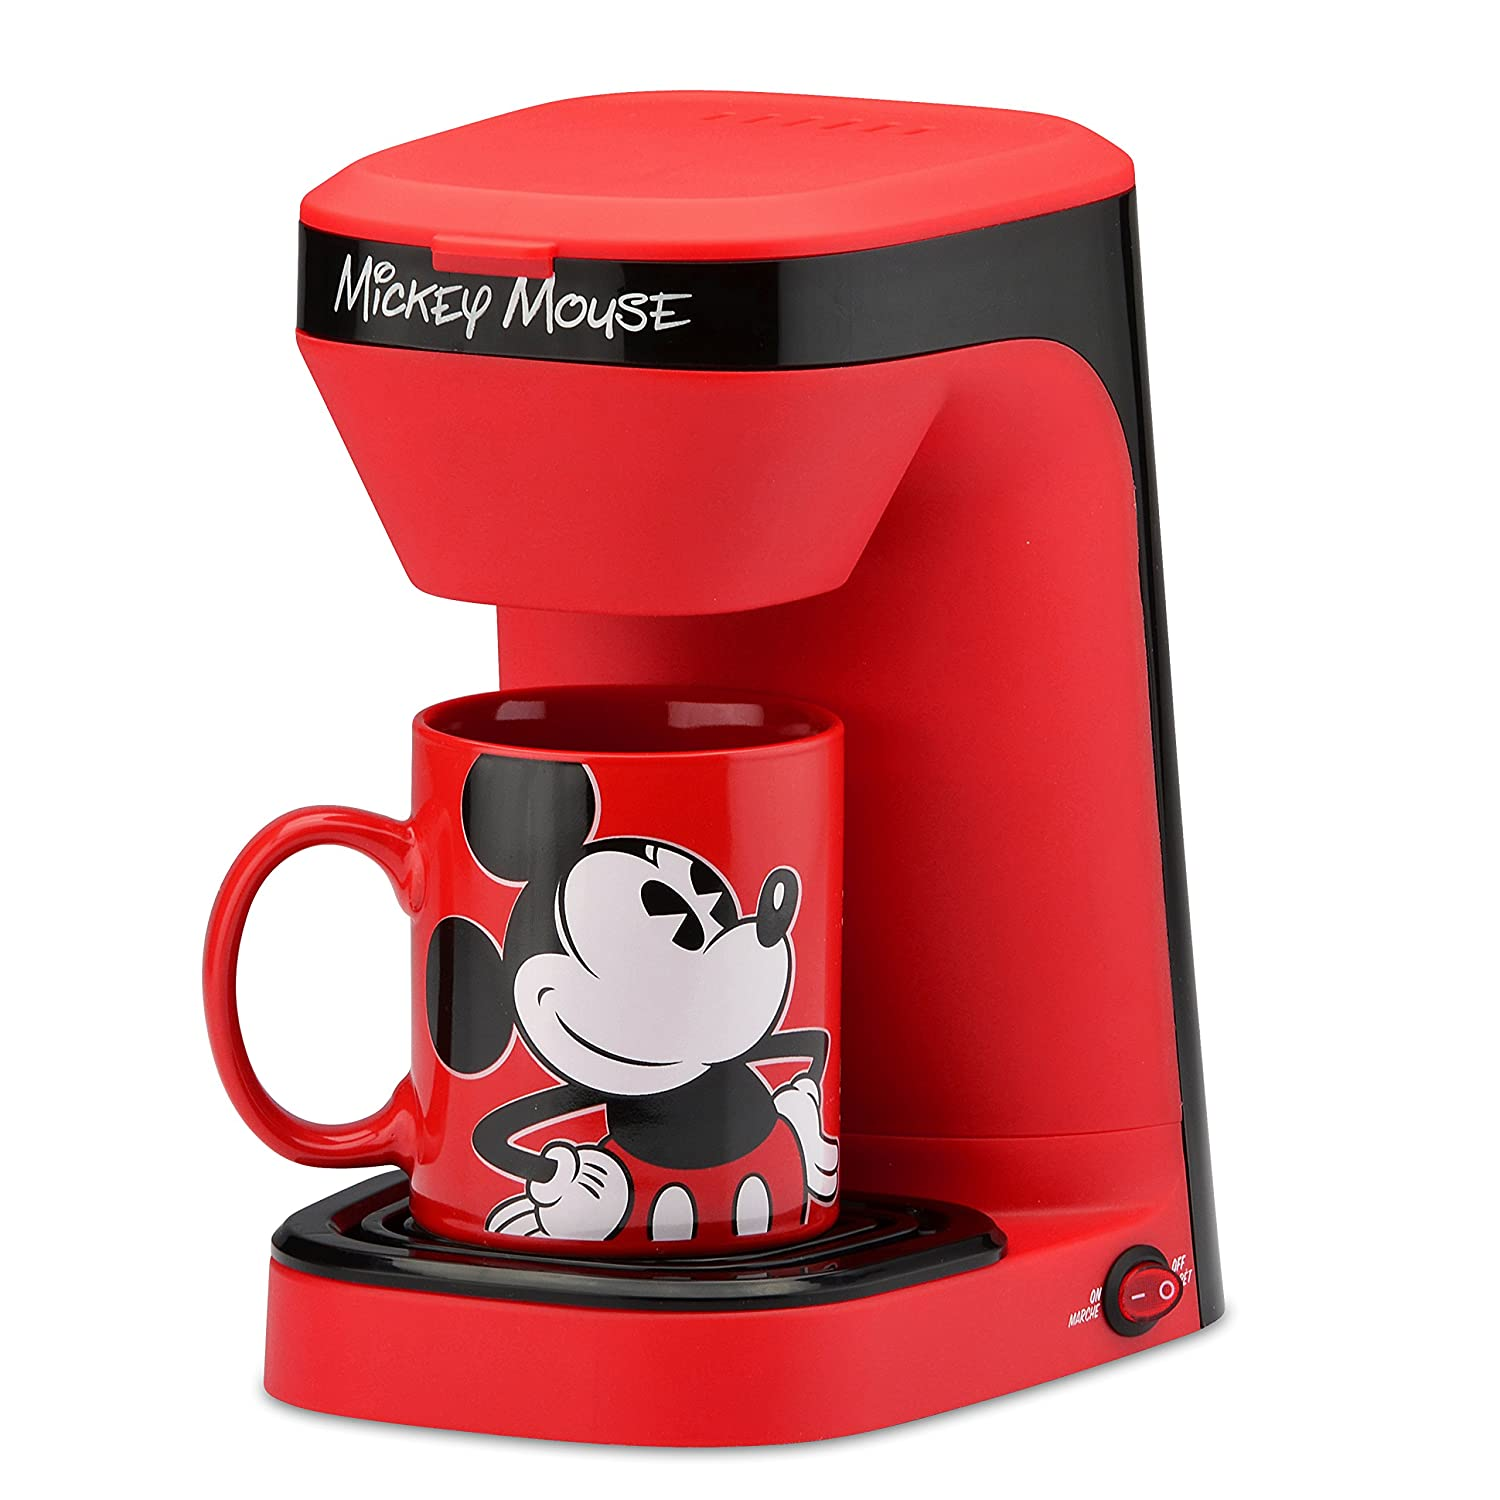 Disney Mickey Mouse 1-Cup Coffee Maker with Mug